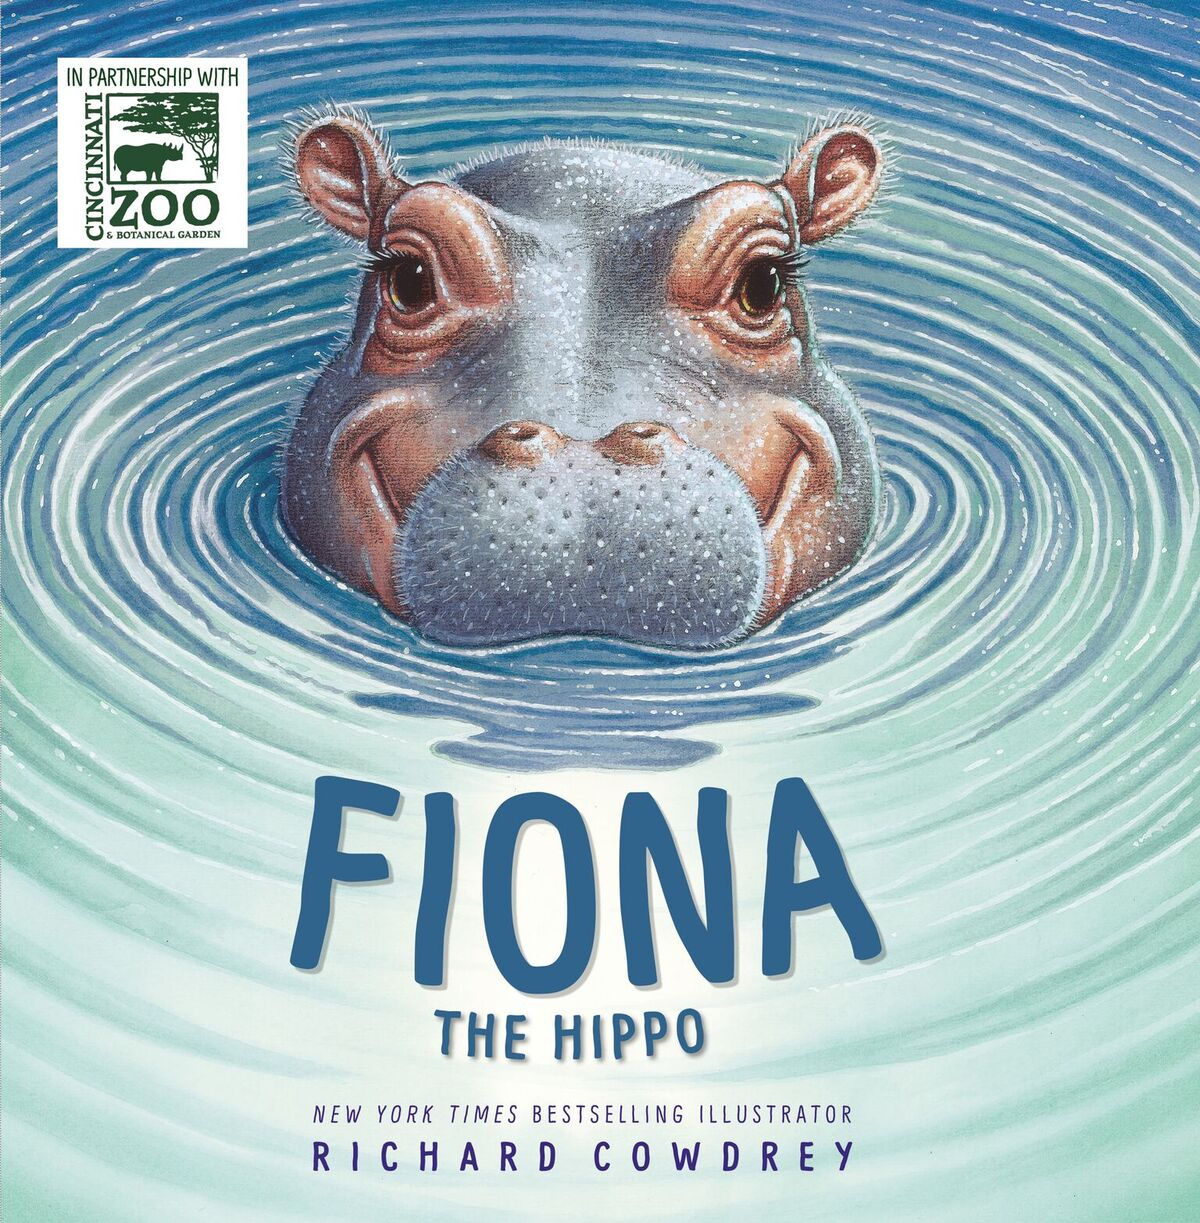 Fiona the Hippo + Prize Pack Giveaway